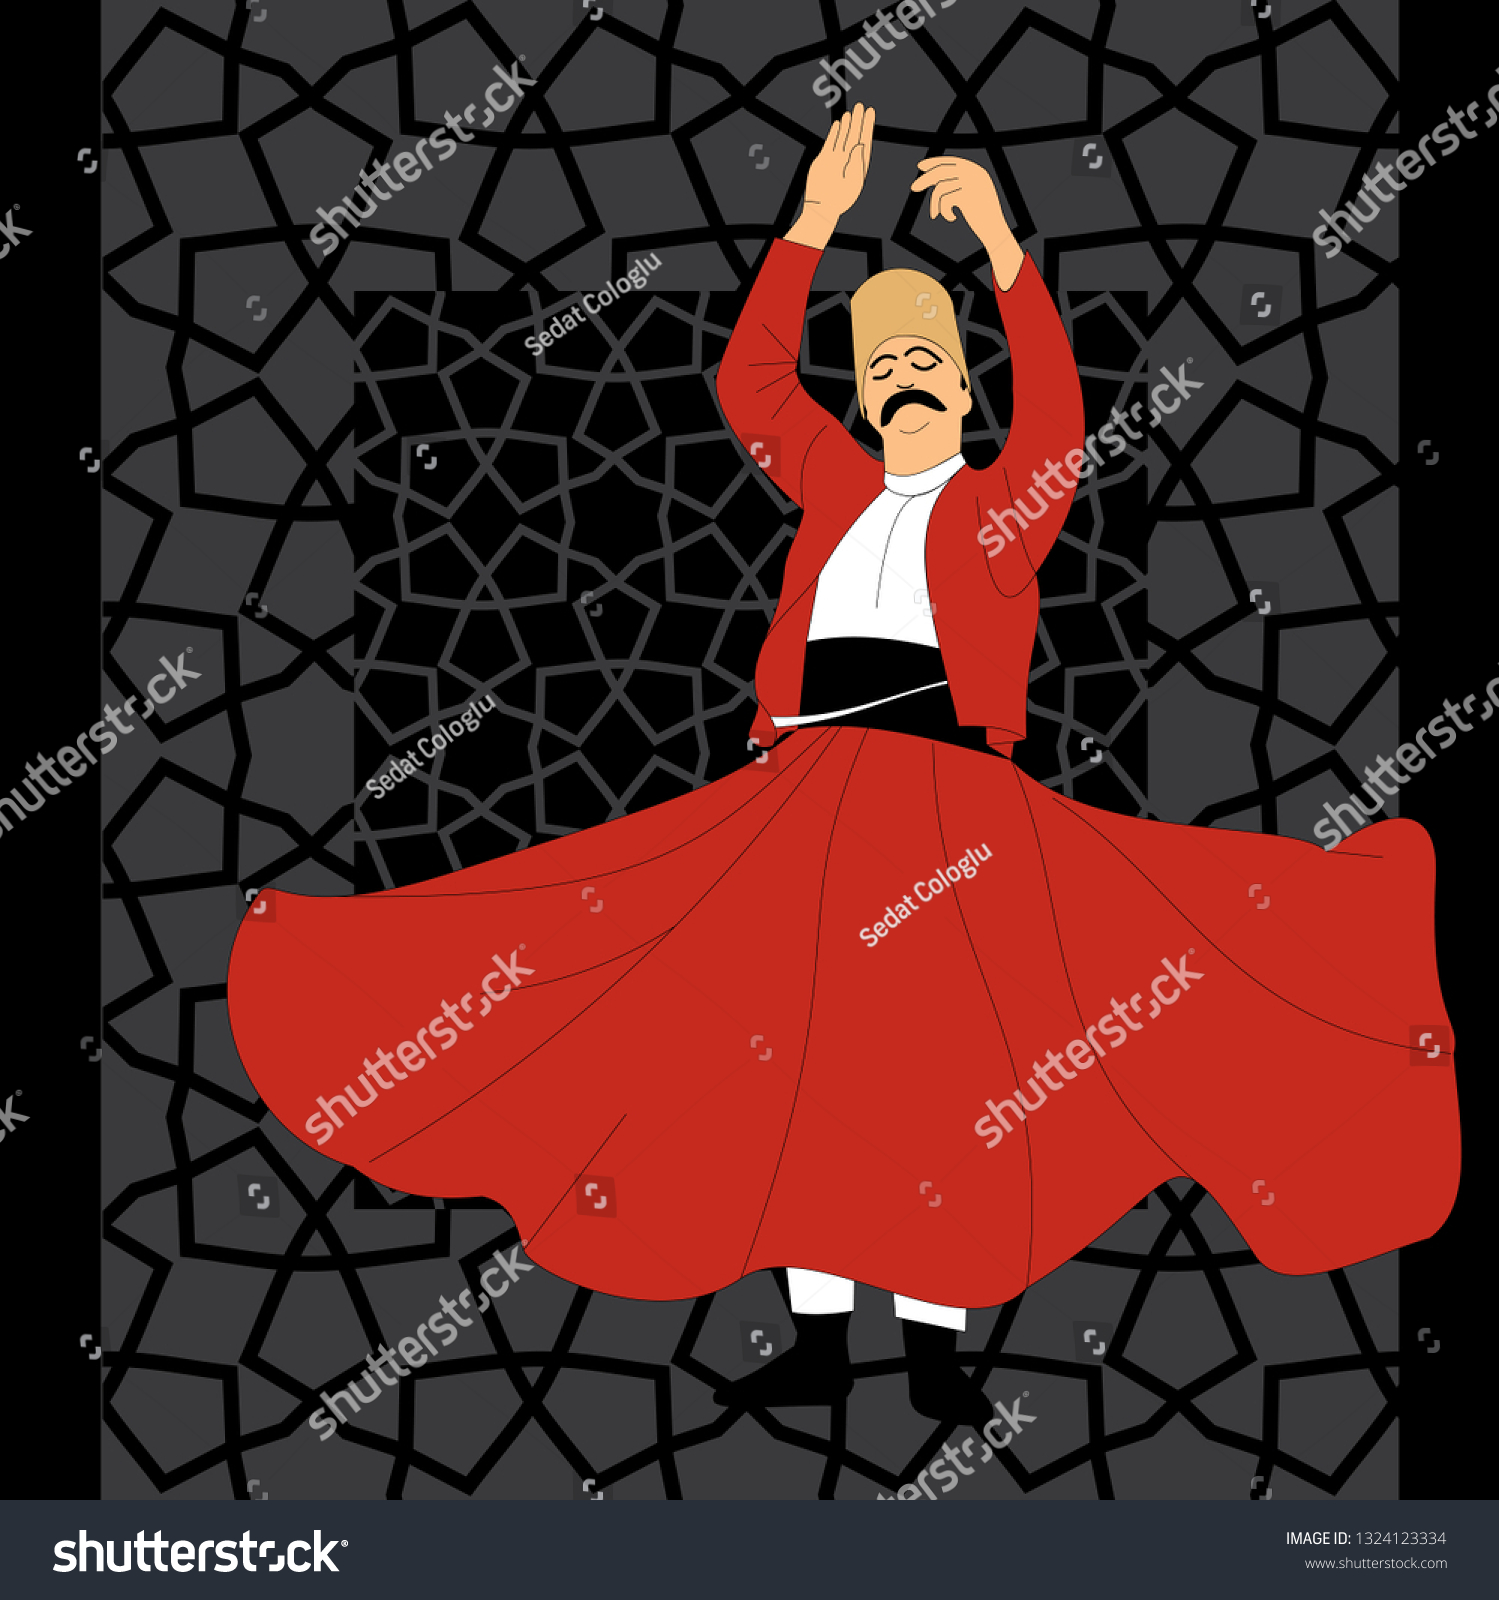 stock-vector-dervish-symbolic-study-of-mevlevi-mystical-dance-this-painting-represents-a-movement-of-this-1324123334